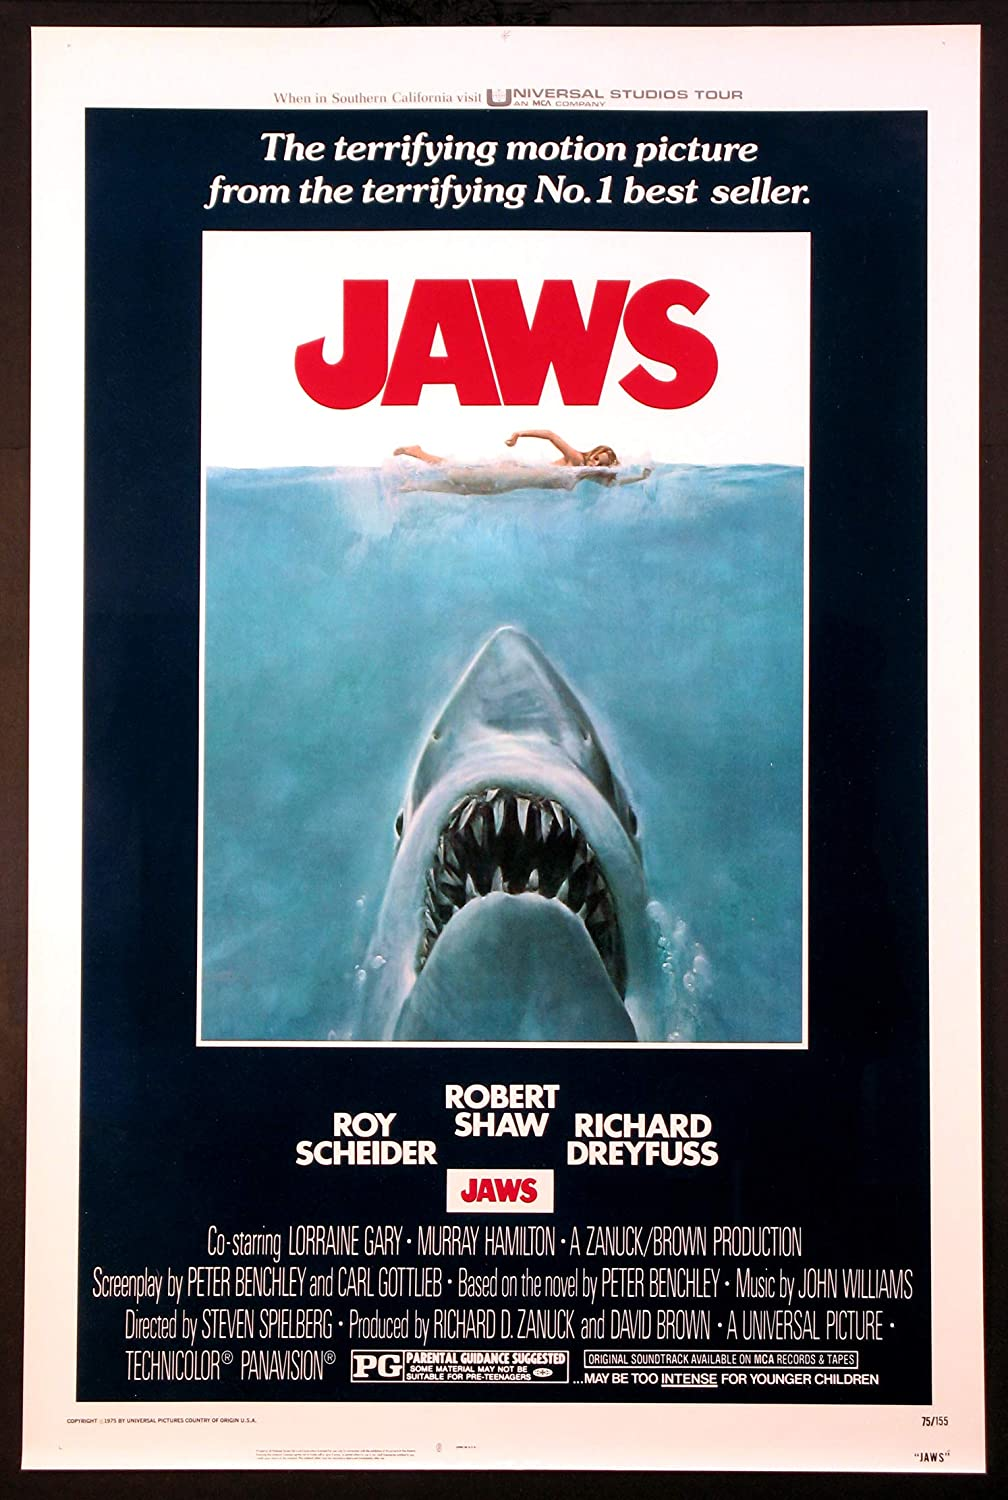 JAWS STEVEN SPIELBERG SHARK HORROR 1975 ORIGINAL 27X41 ONE SHEET MOVIE  POSTER ROLLED NEAR MINT/MINT UNUSED at Amazon's Entertainment Collectibles  Store